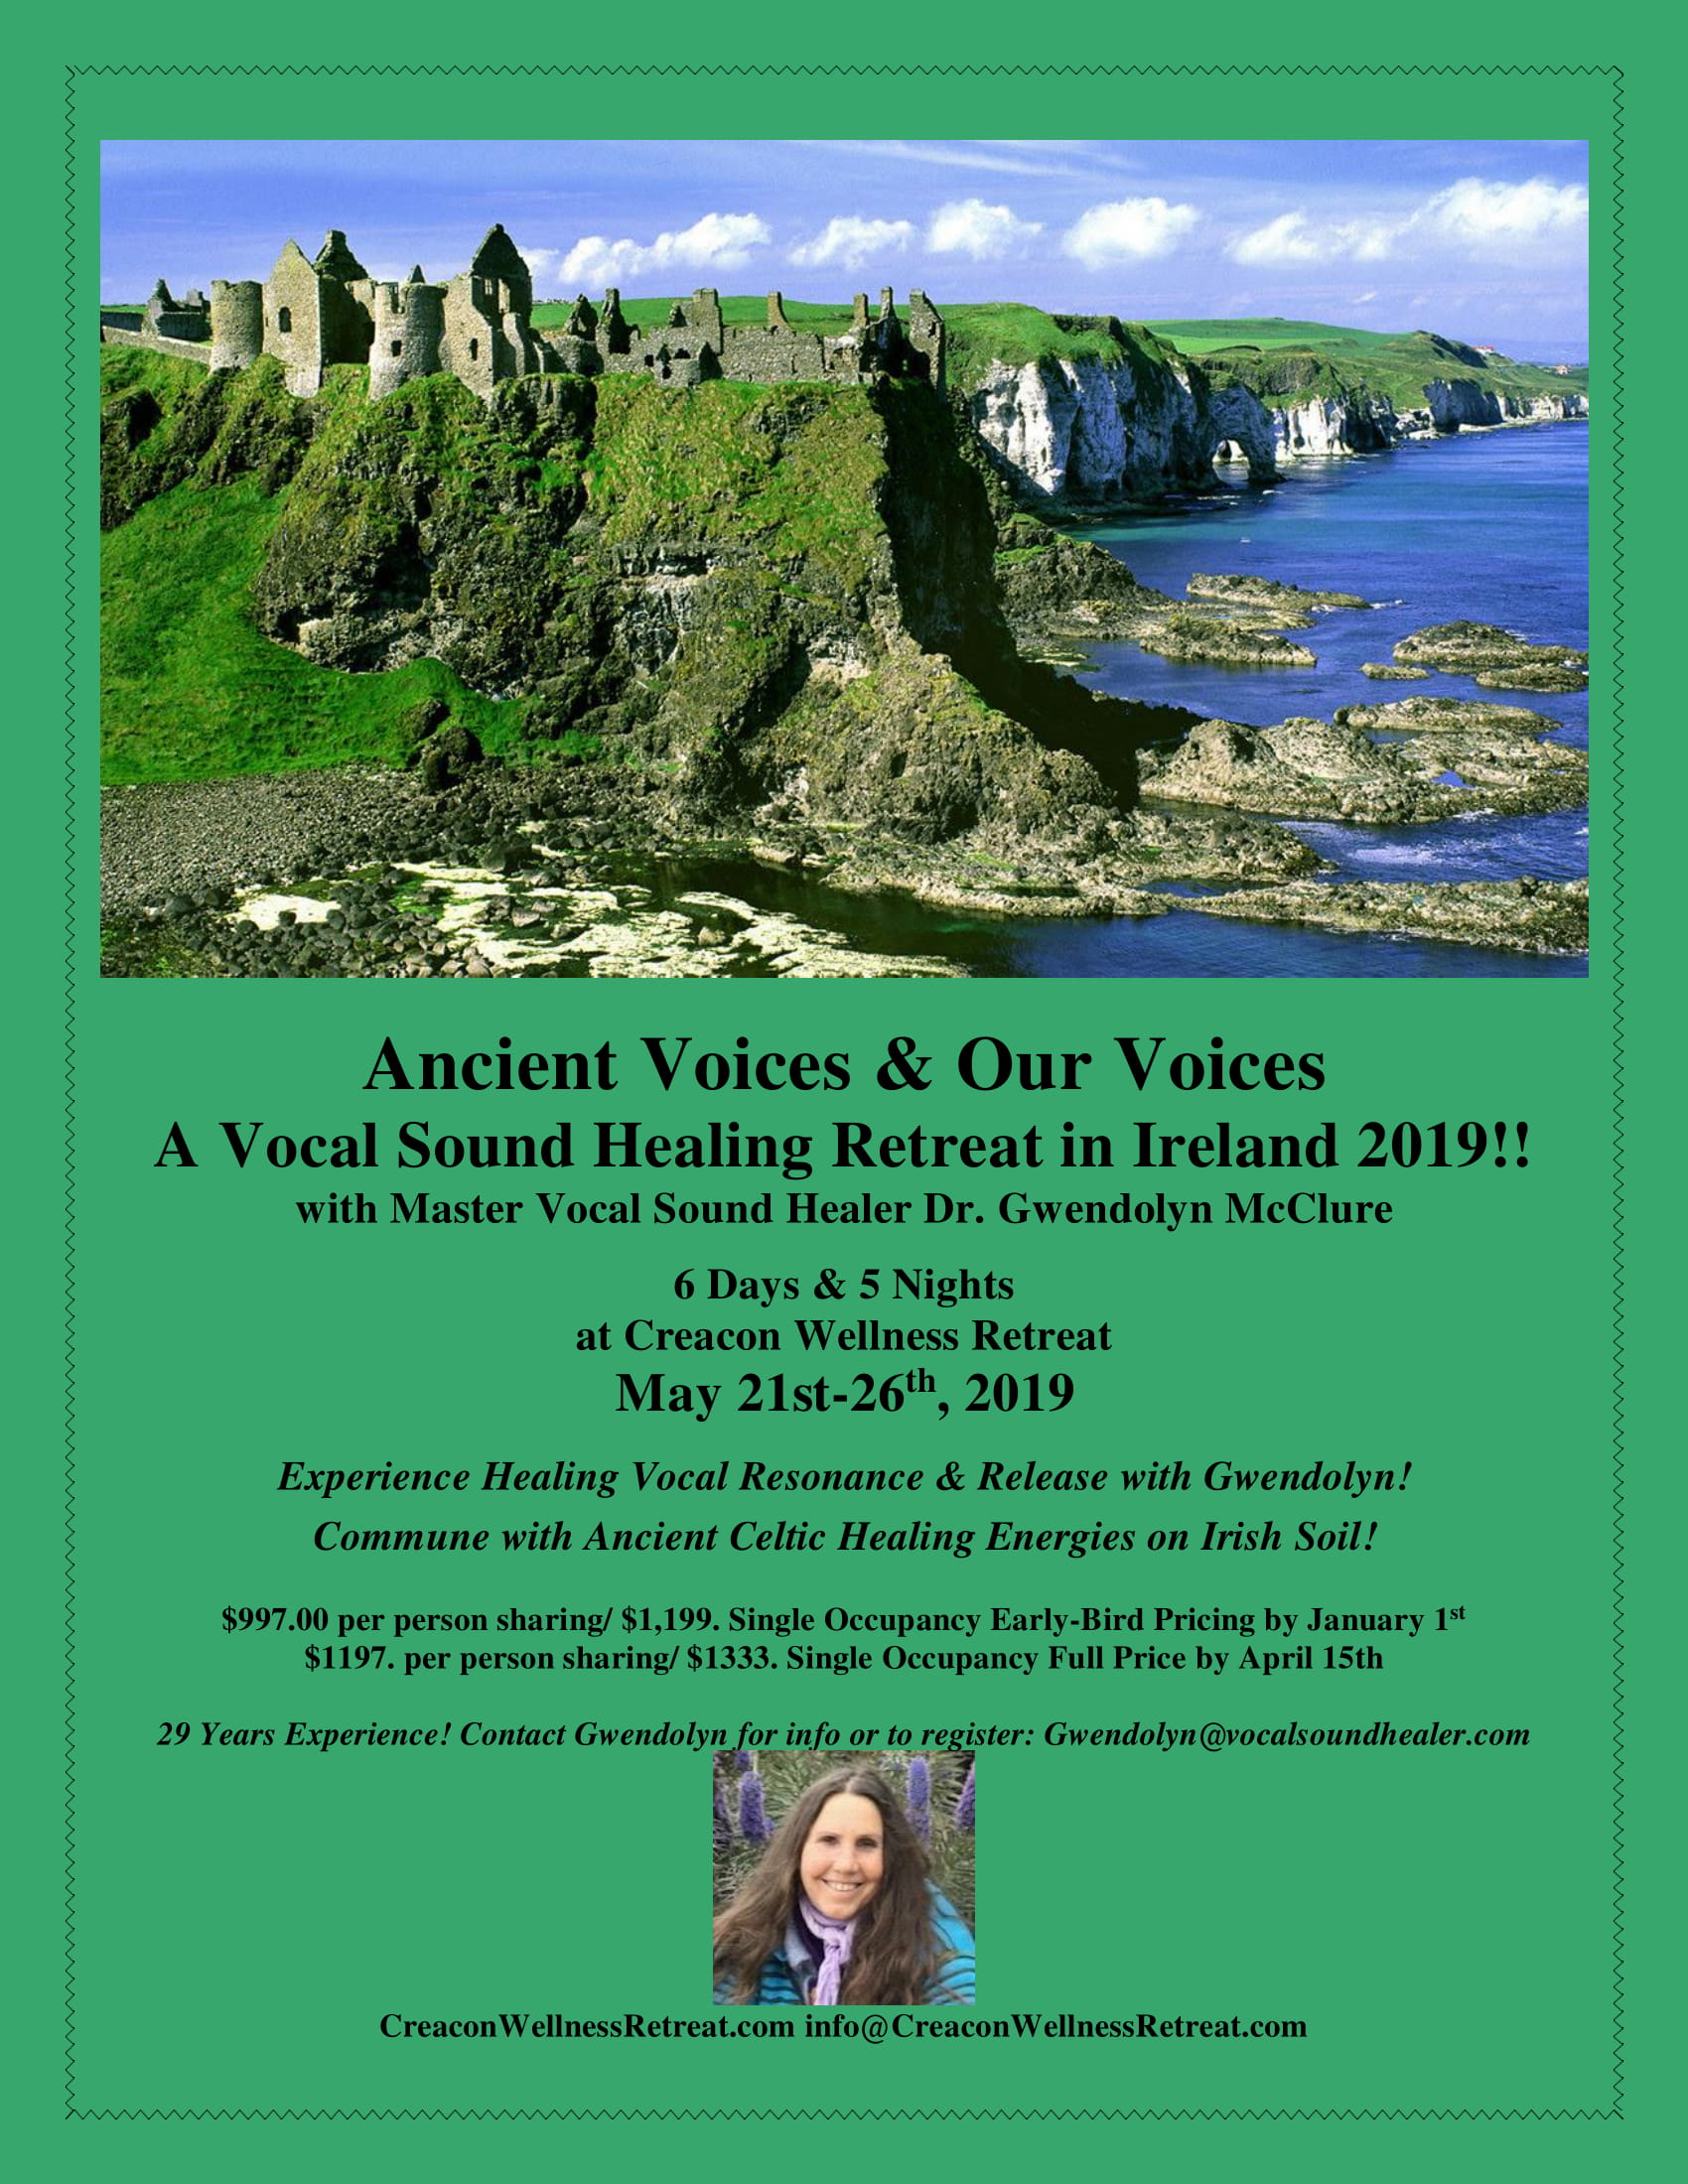 Ireland Retreat Flyer-1